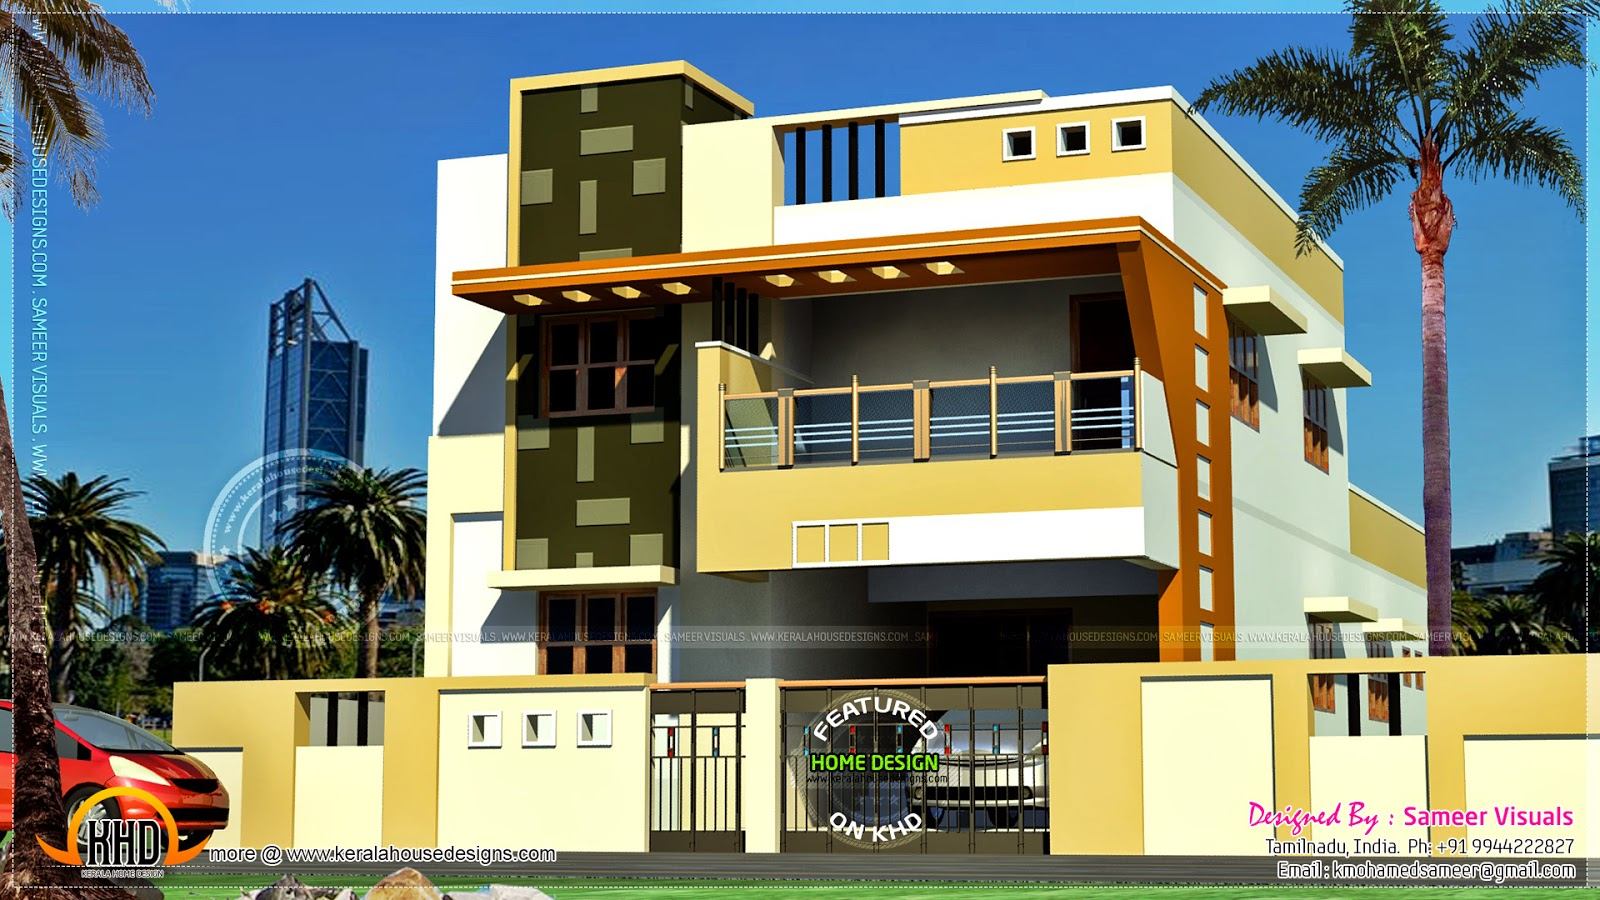 Modern south indian house design kerala home design and for Indian house photo gallery